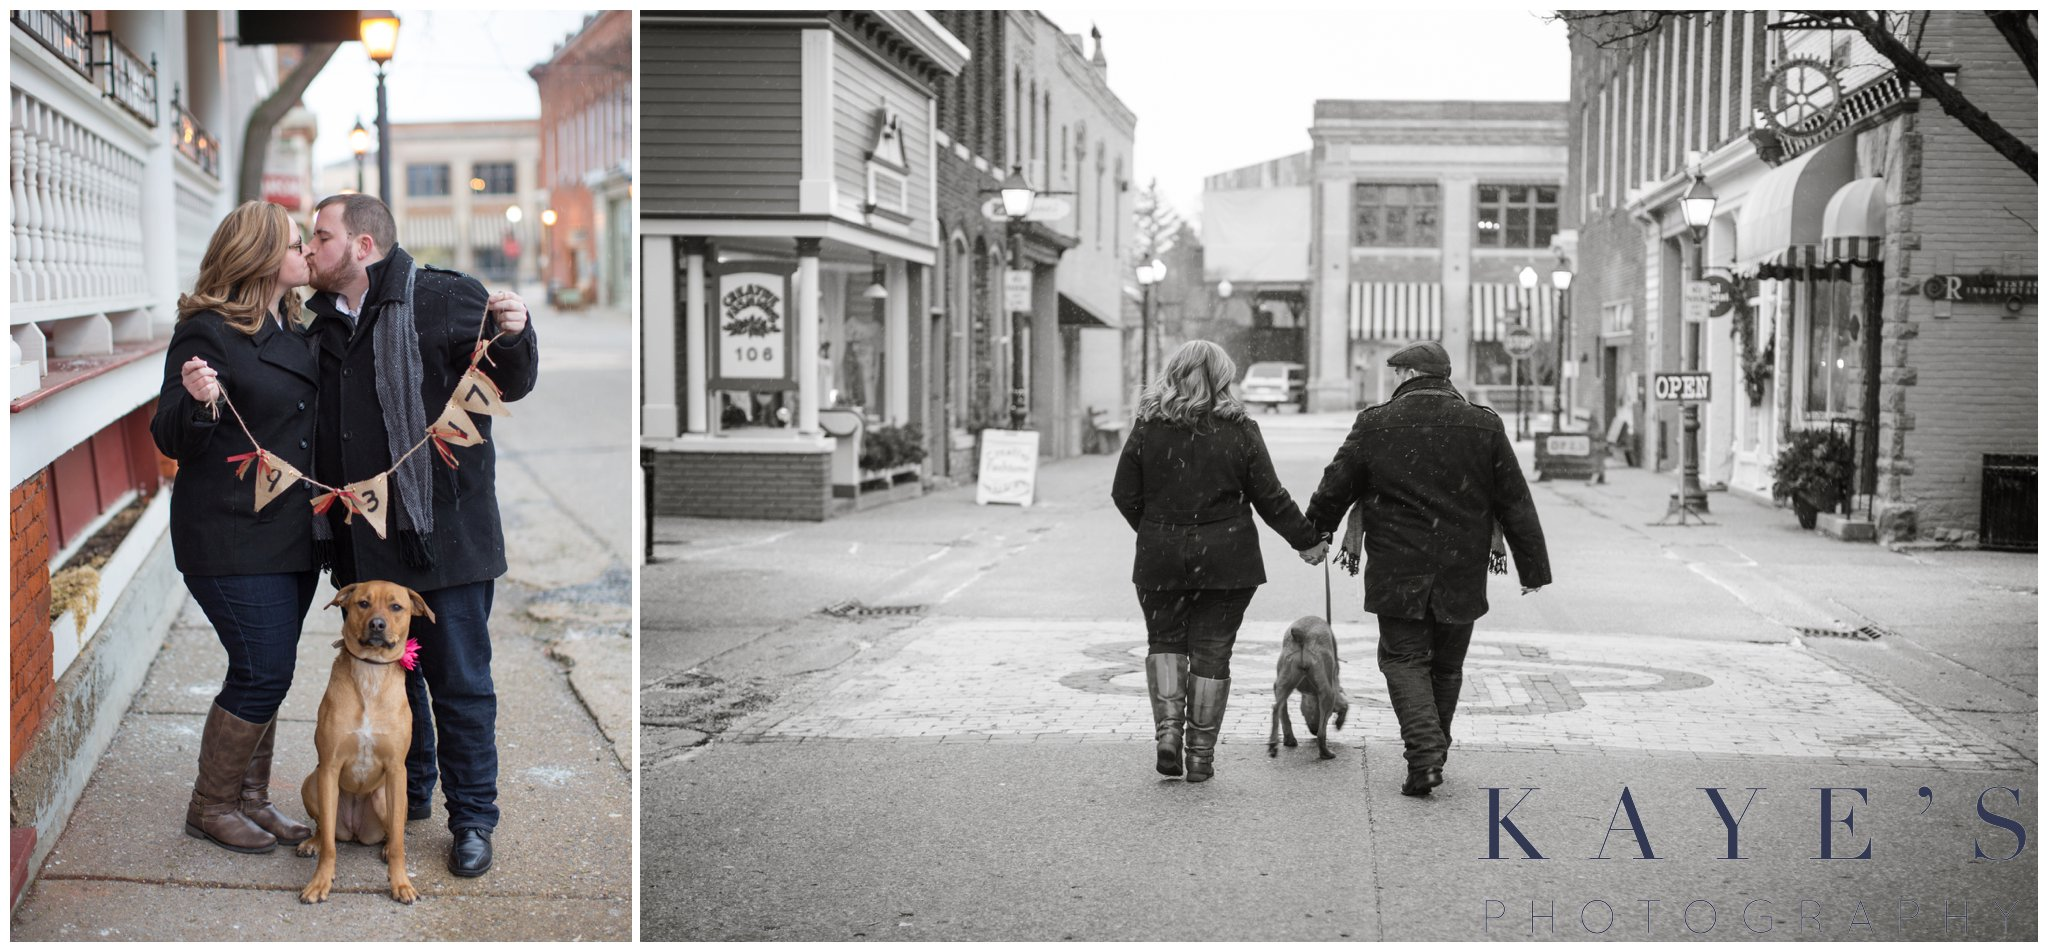 Grand blanc, Michigan engagement session with couple walking and kissing in the city with their dog during their engagement portraits